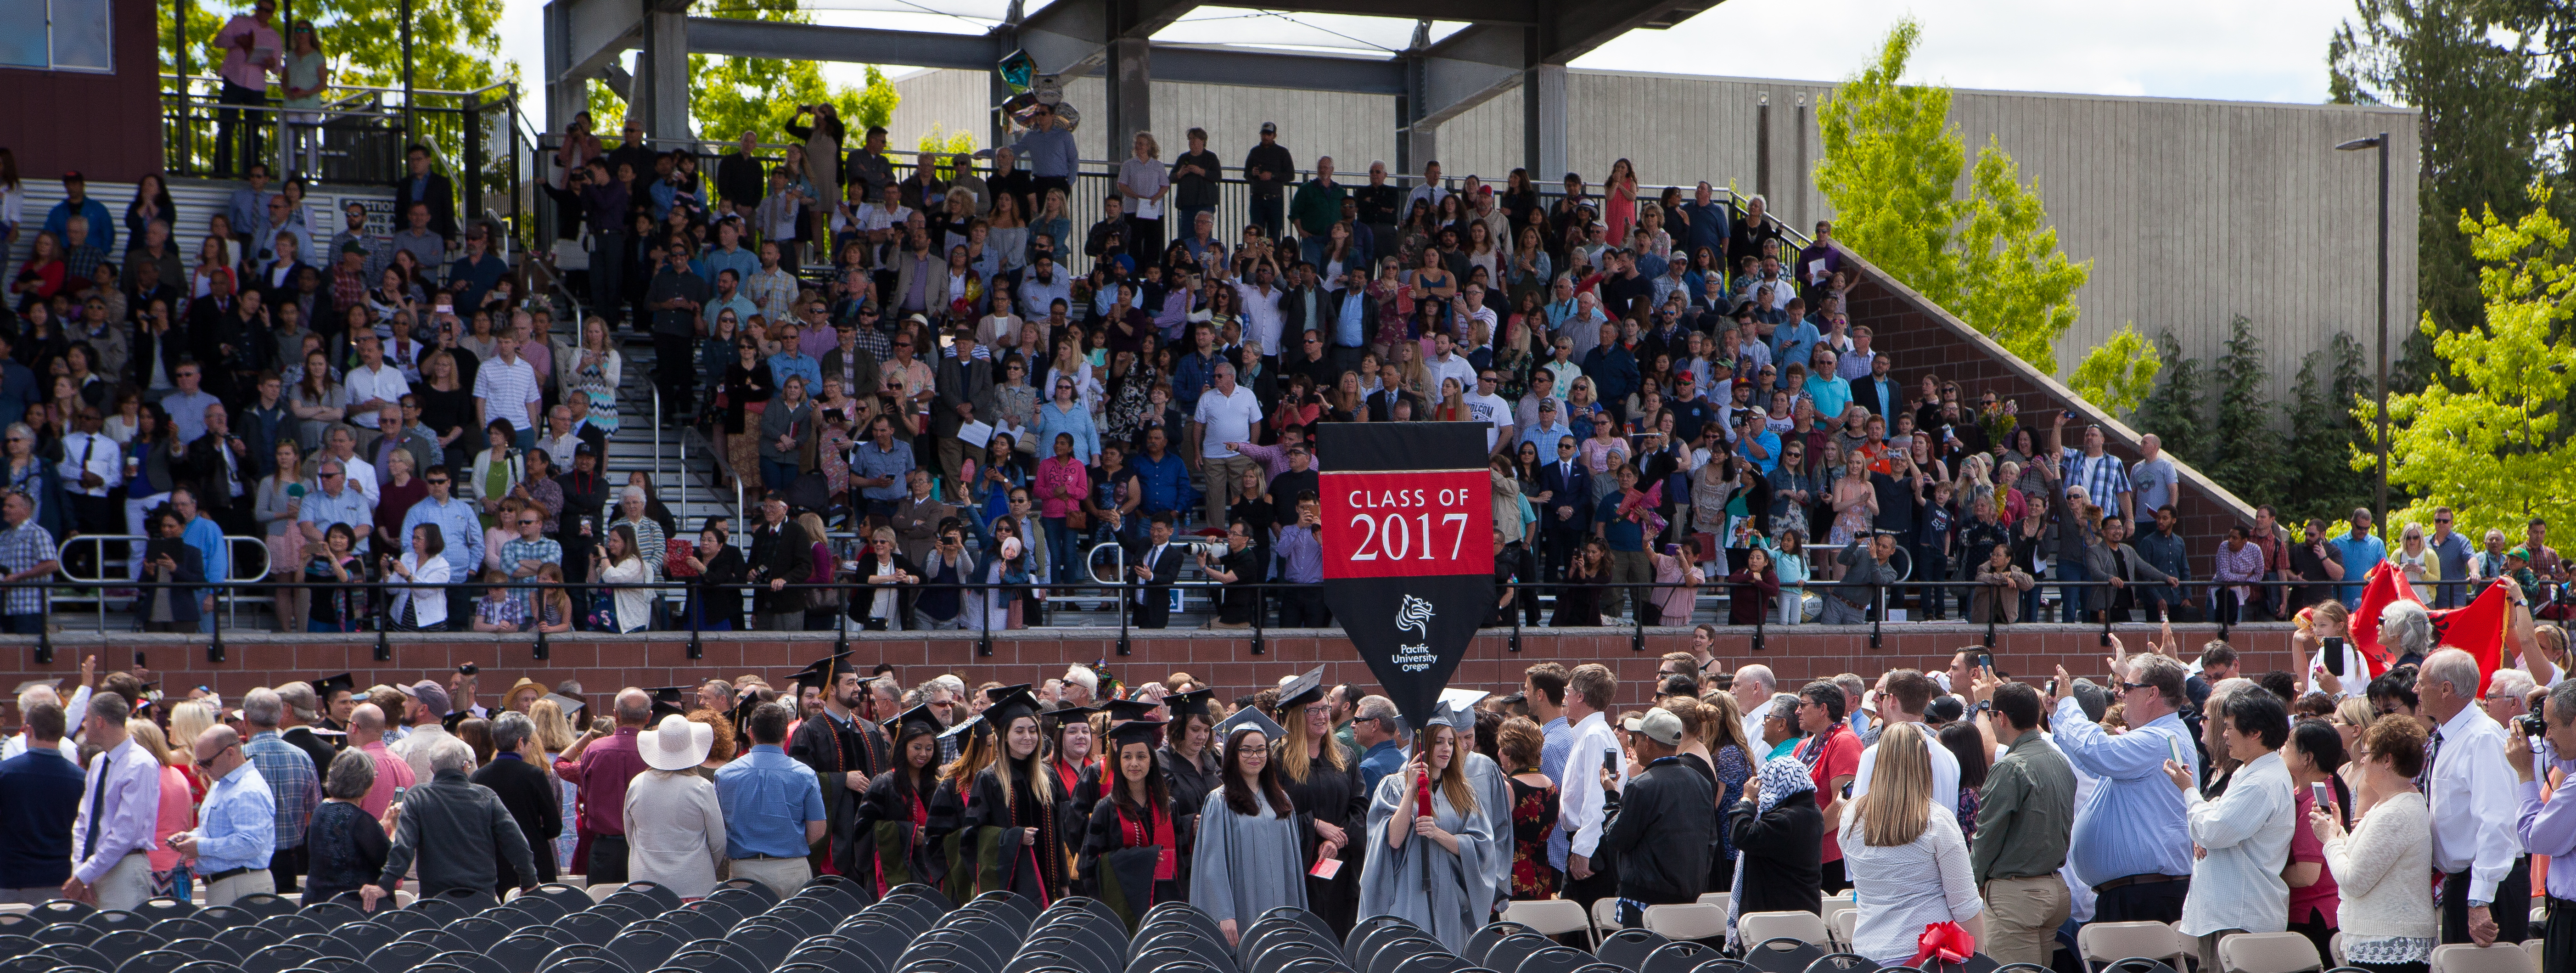 Visitors in bleacher seating watching mencement processional